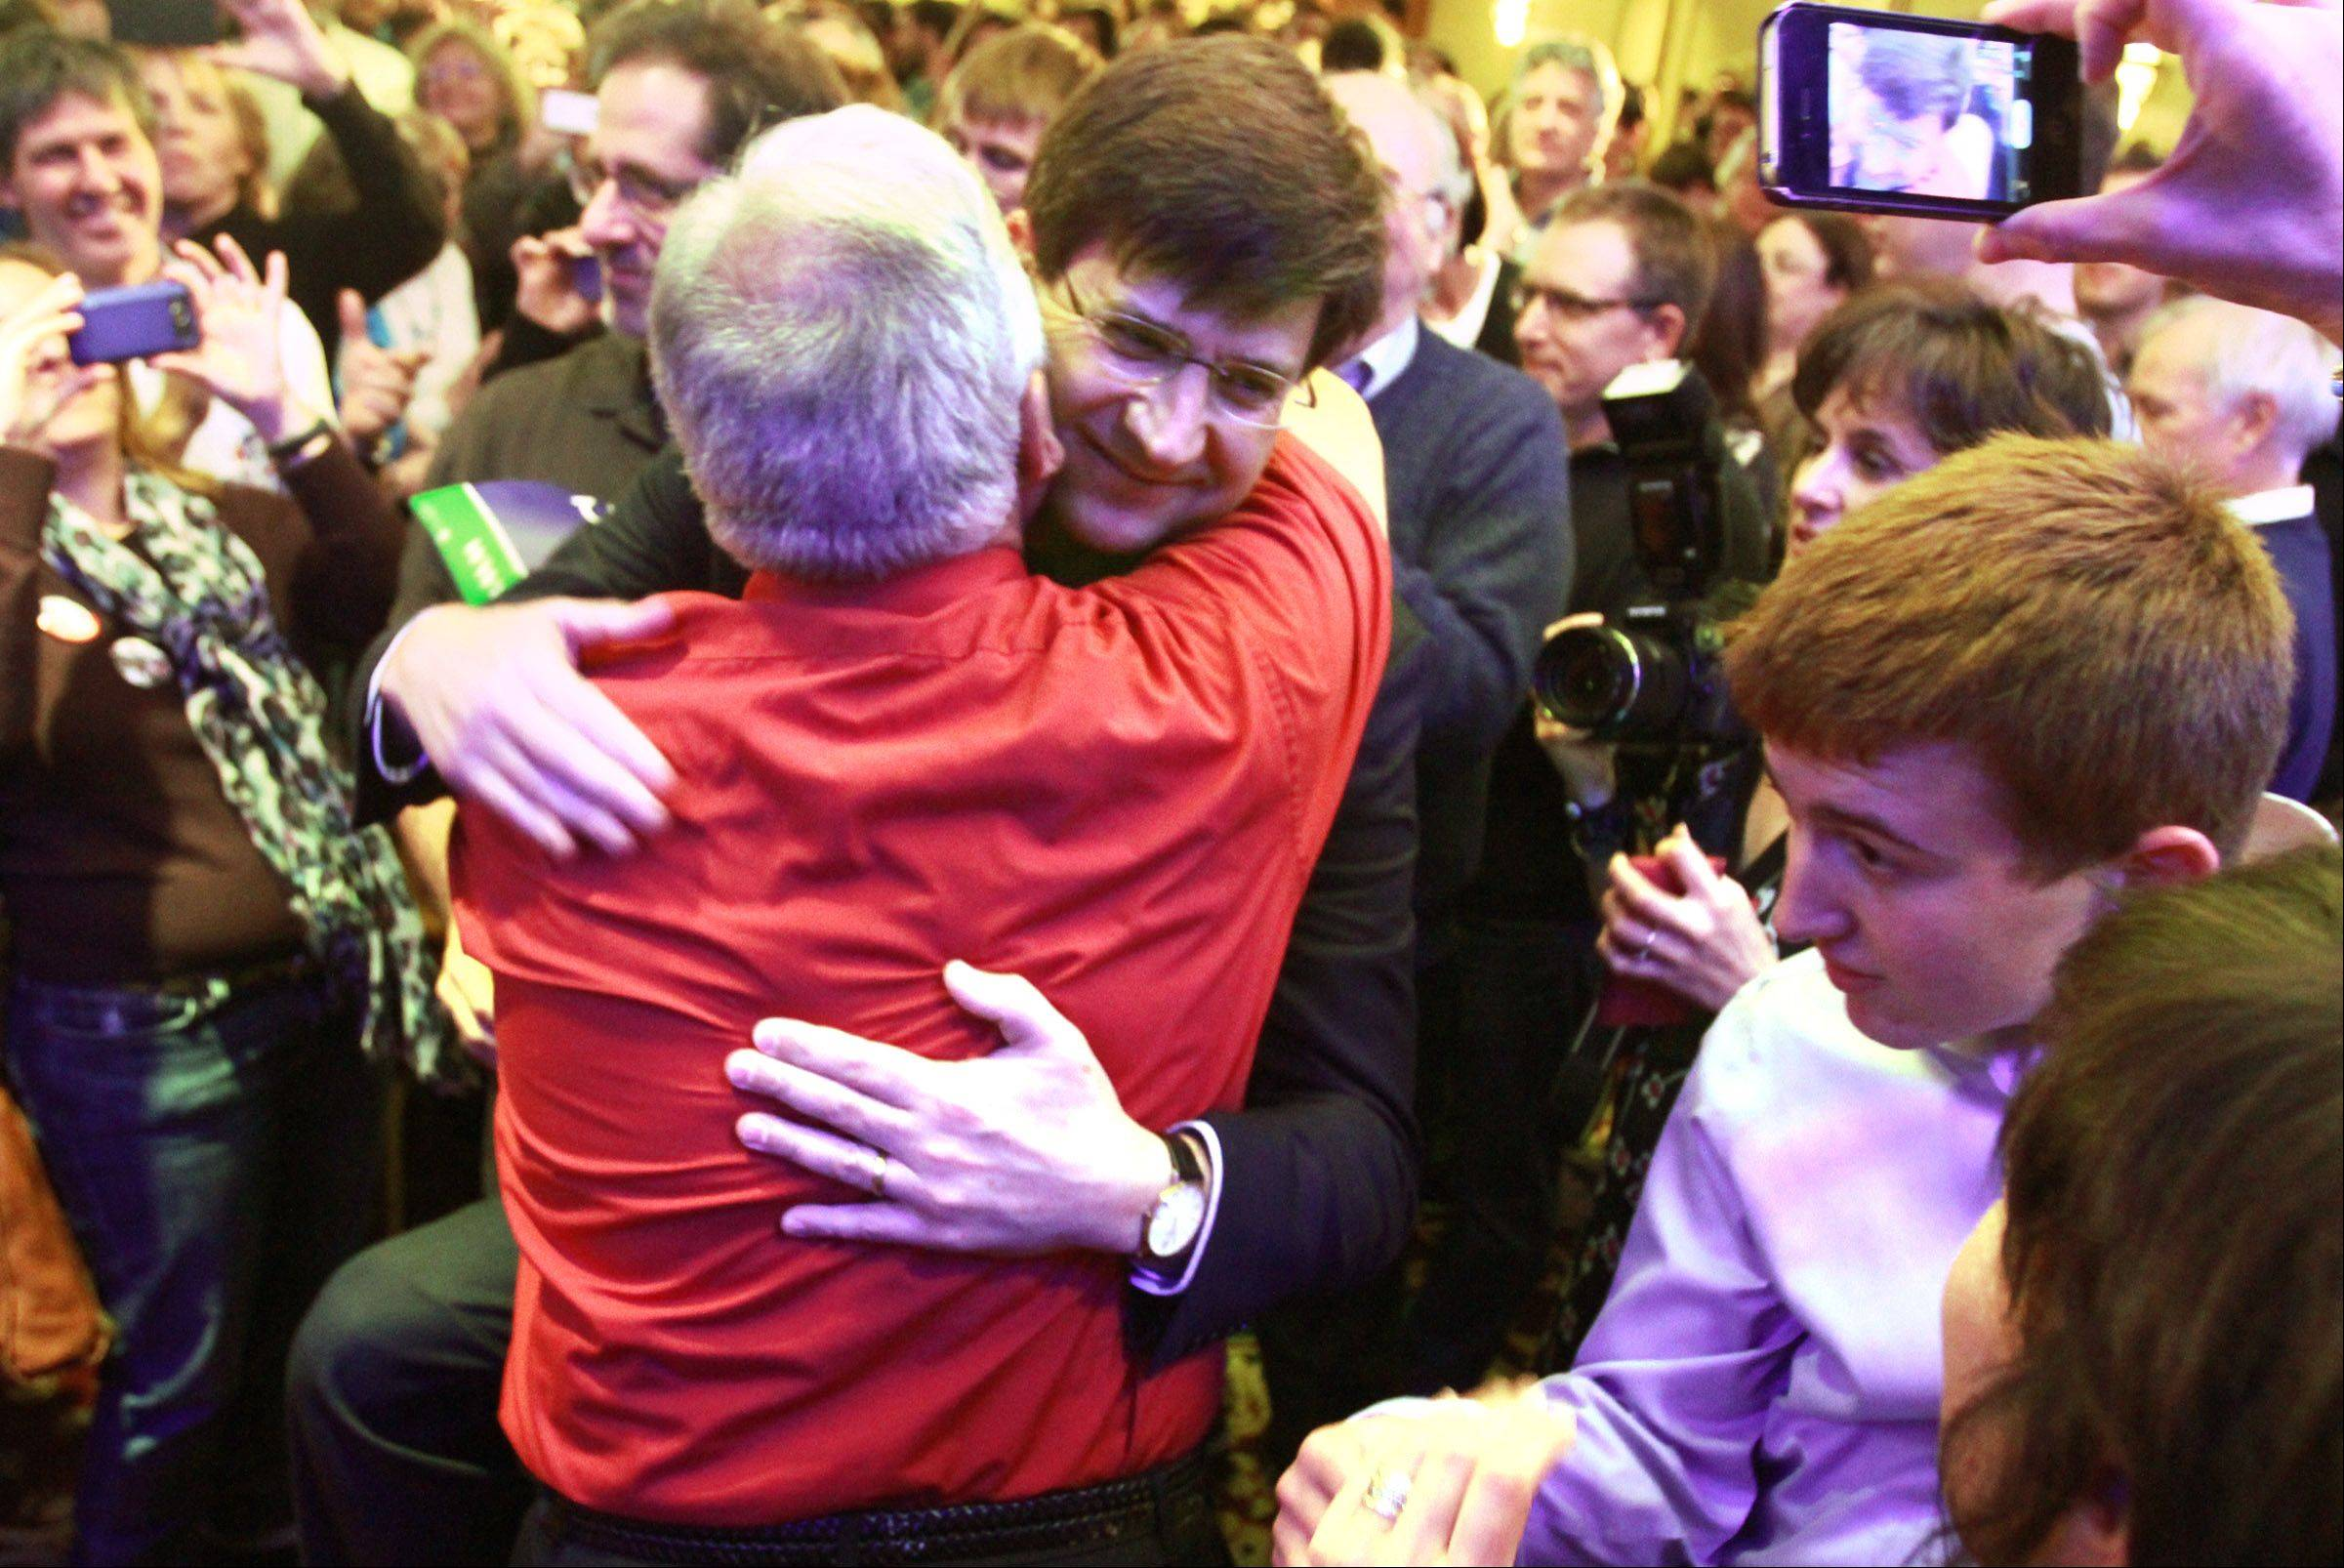 Brad Schneider receives a hug as he takes the stage after winning the Illinois's 10th Congressional District race.